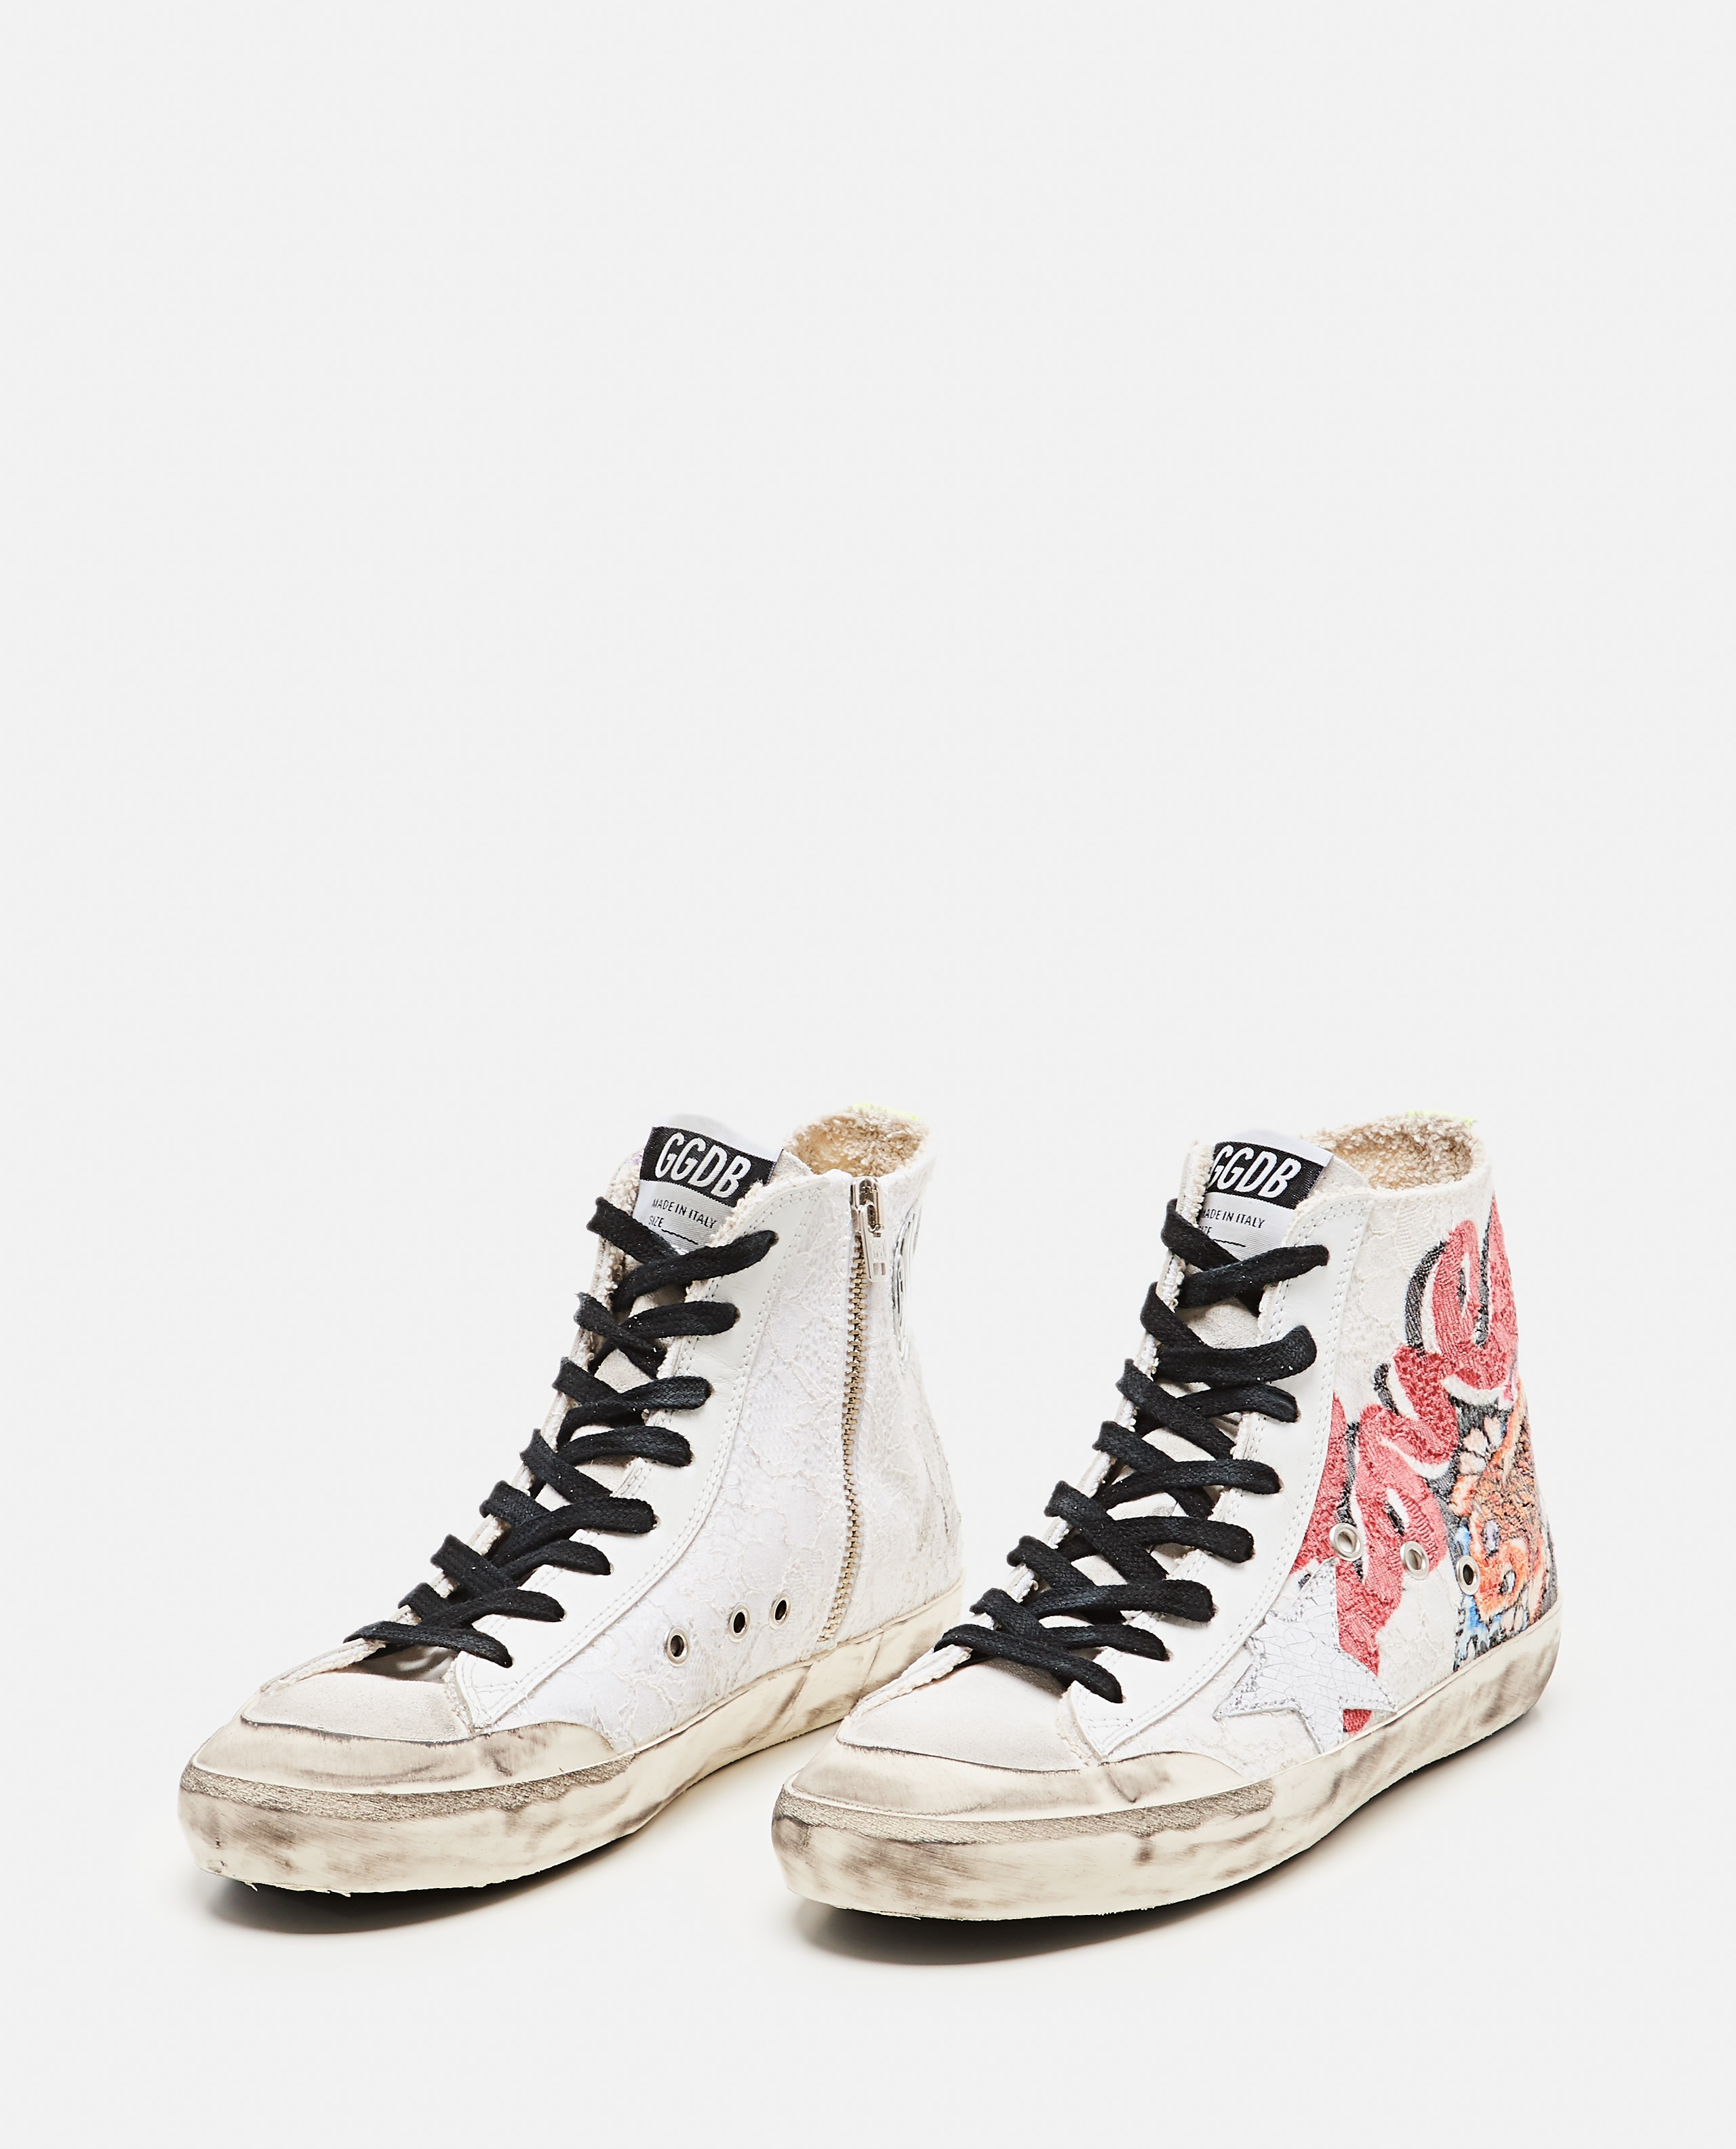 Francy Lace sneakers with Japanese Crackle` Star print Donna Golden Goose 000286860042310 2